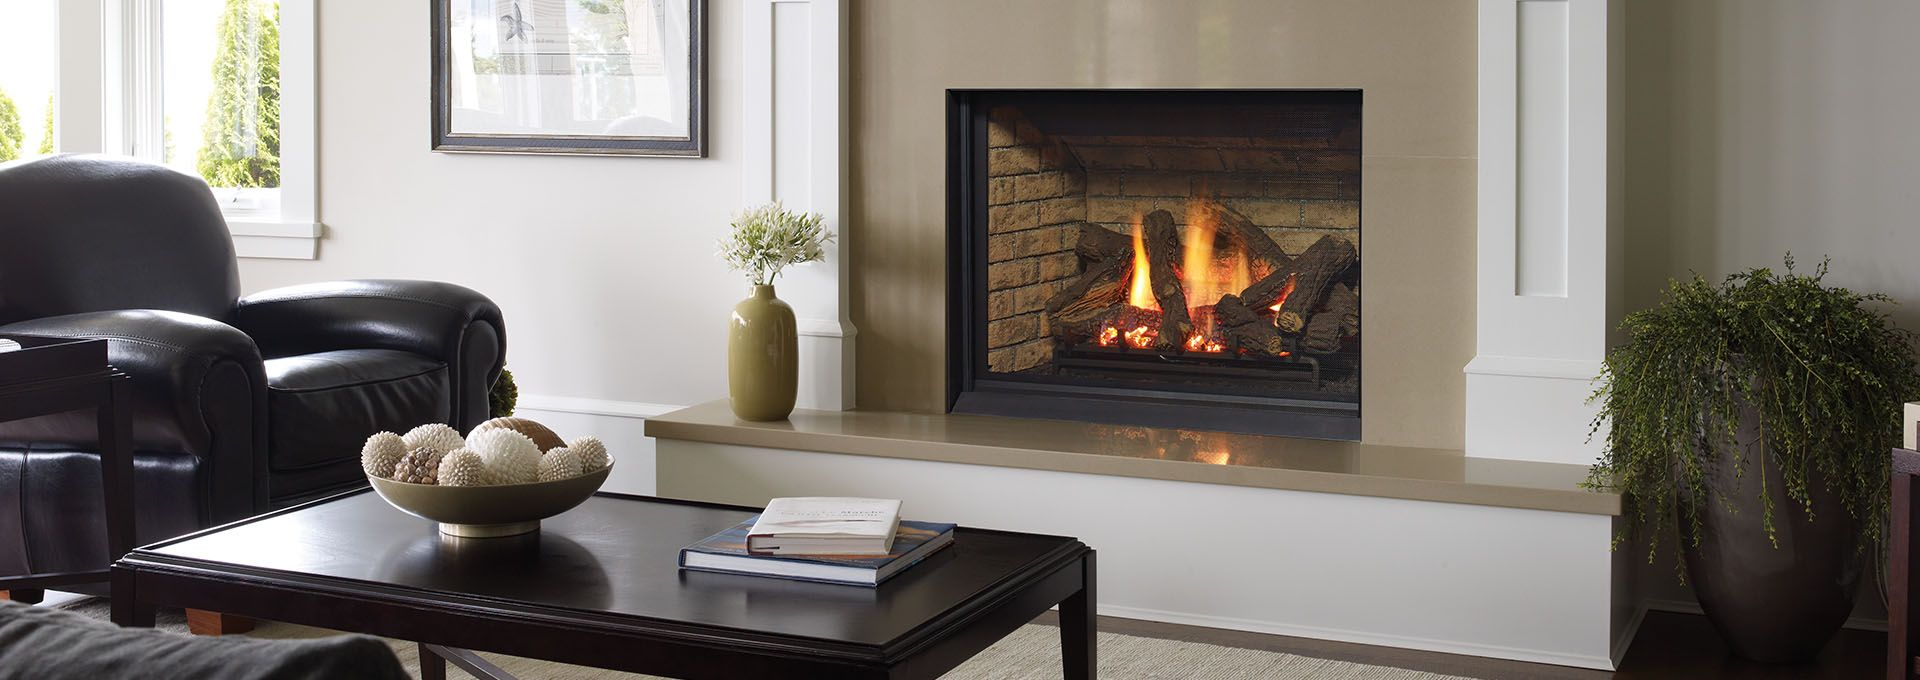 Learn how you can incorporate a traditional gas fireplace into your